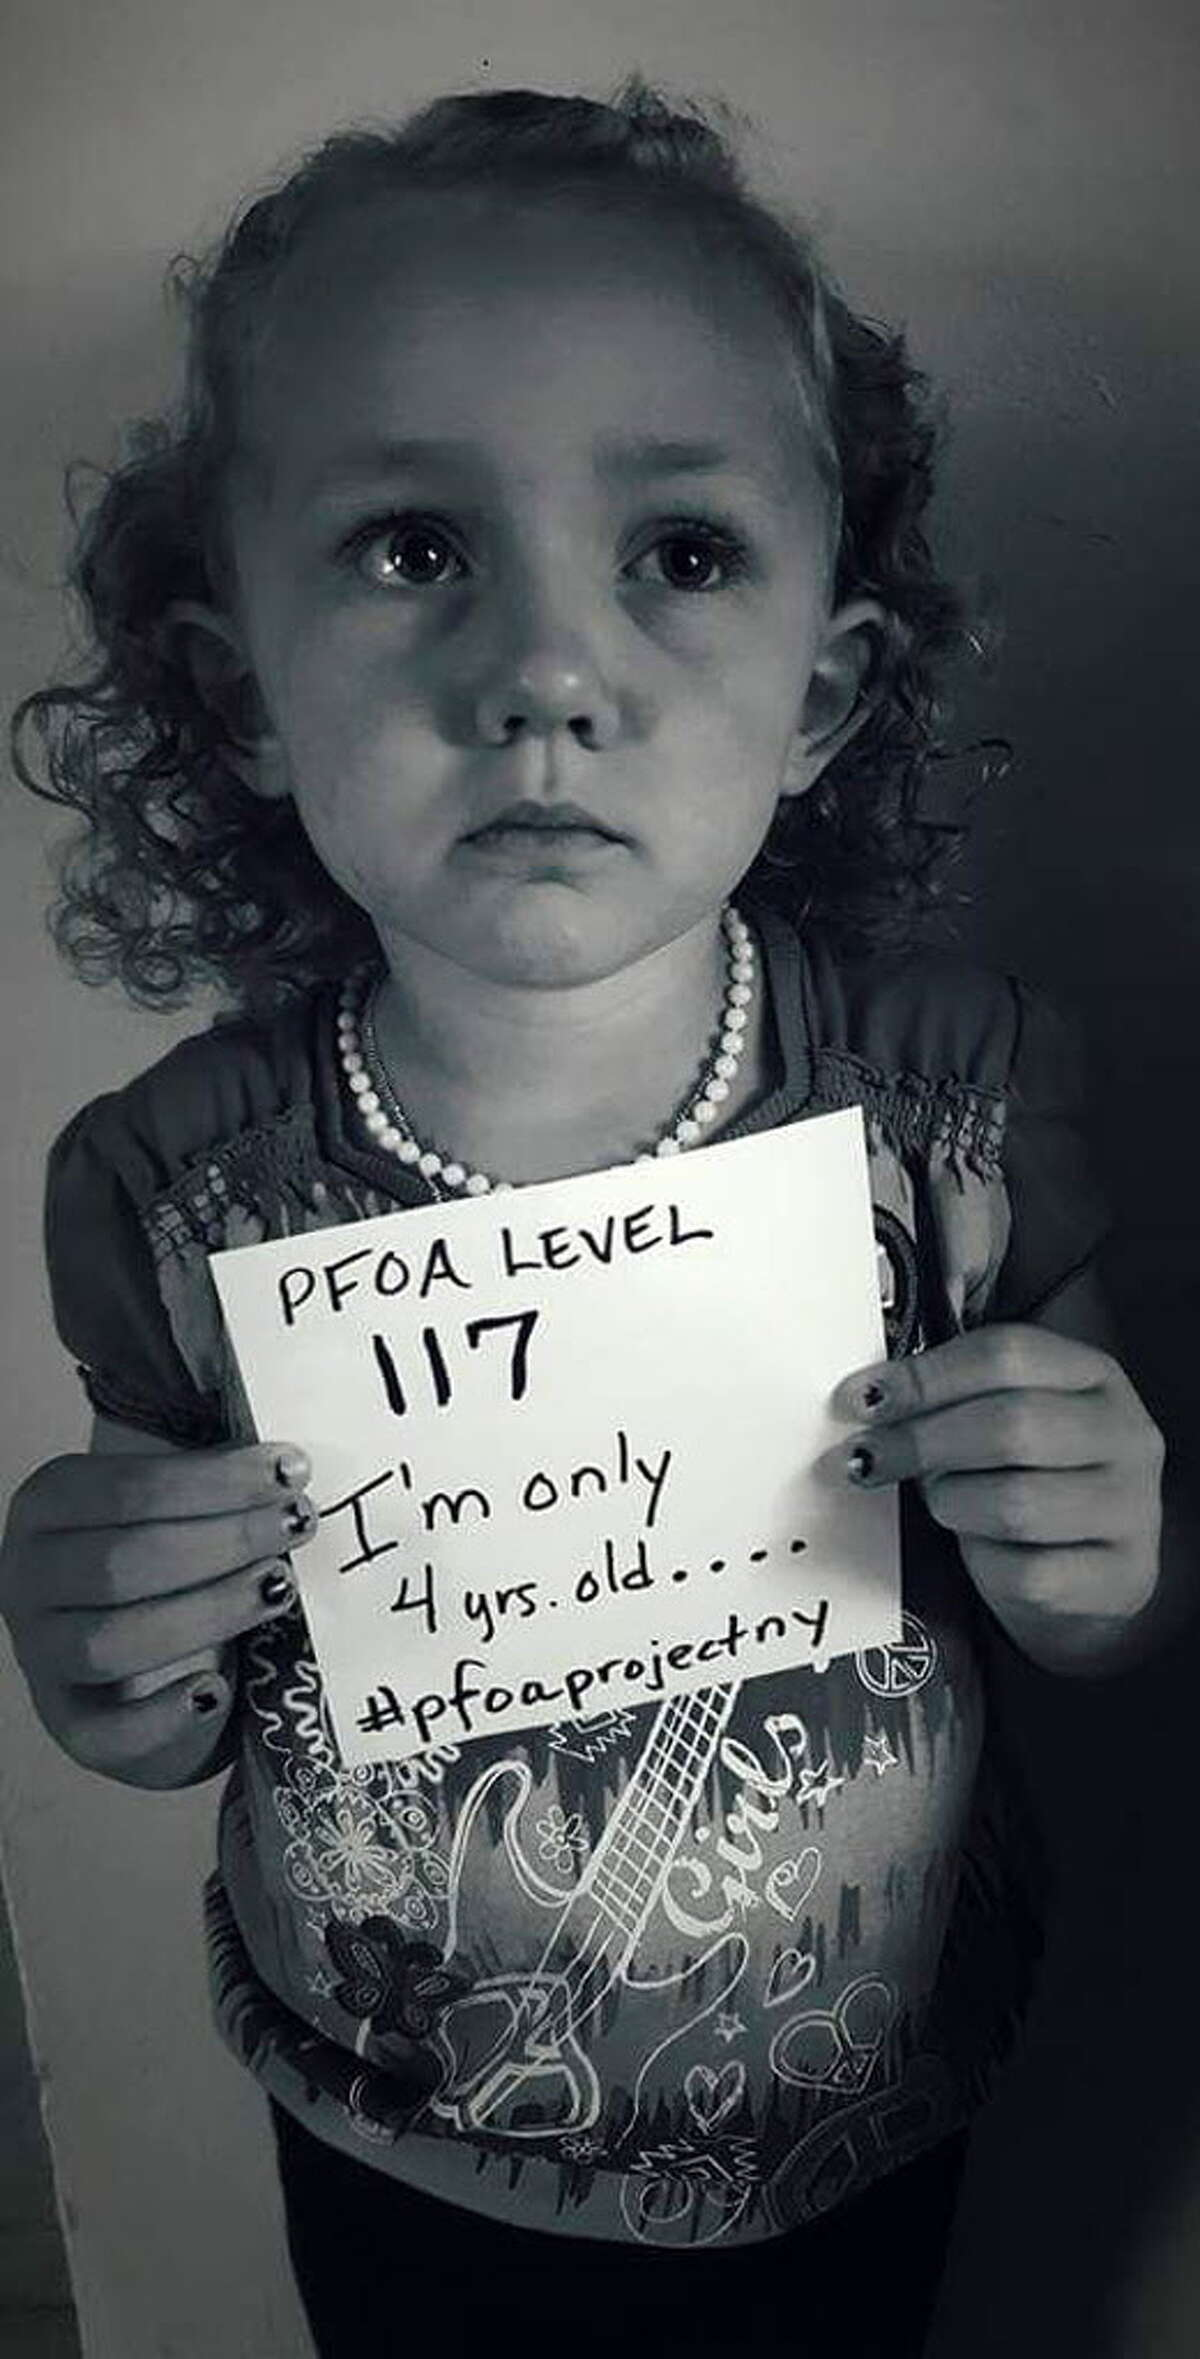 Hoosick Falls resident, Alyssa Aldrich, 4, displays a sign with her body's PFOA level after receiving the results of a recent blood test conducted by the state. The photo was posted on Twitter by parents, Josh and Nikki Aldrich. (Courtesy Josh and Nikki Aldrich)